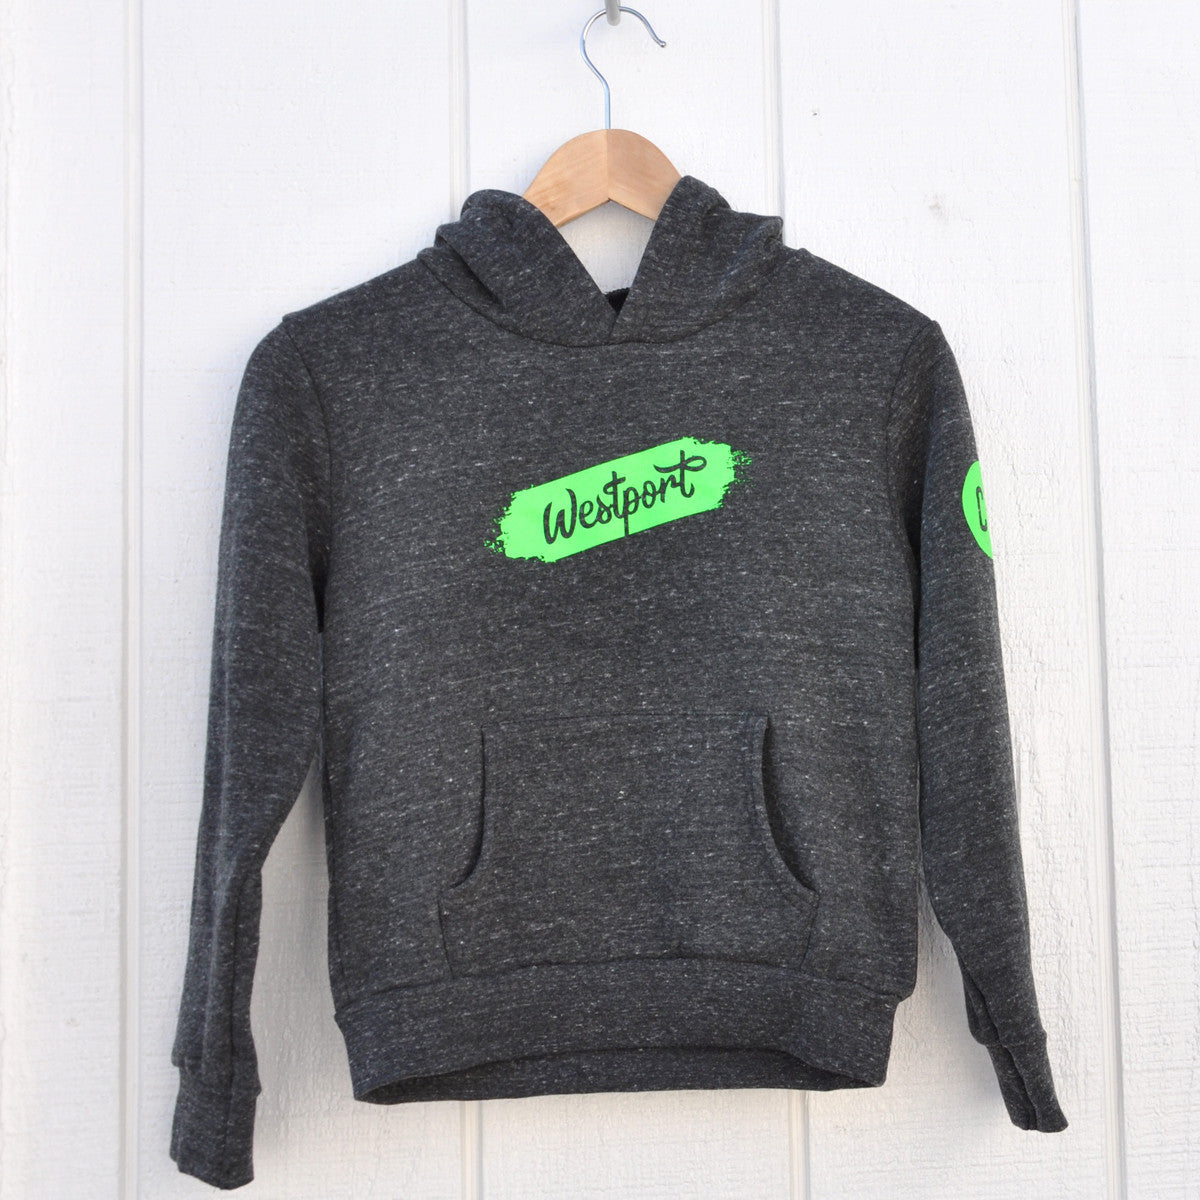 Westport Sweatshirt by Townee - Youth Playground Hoodie (full)